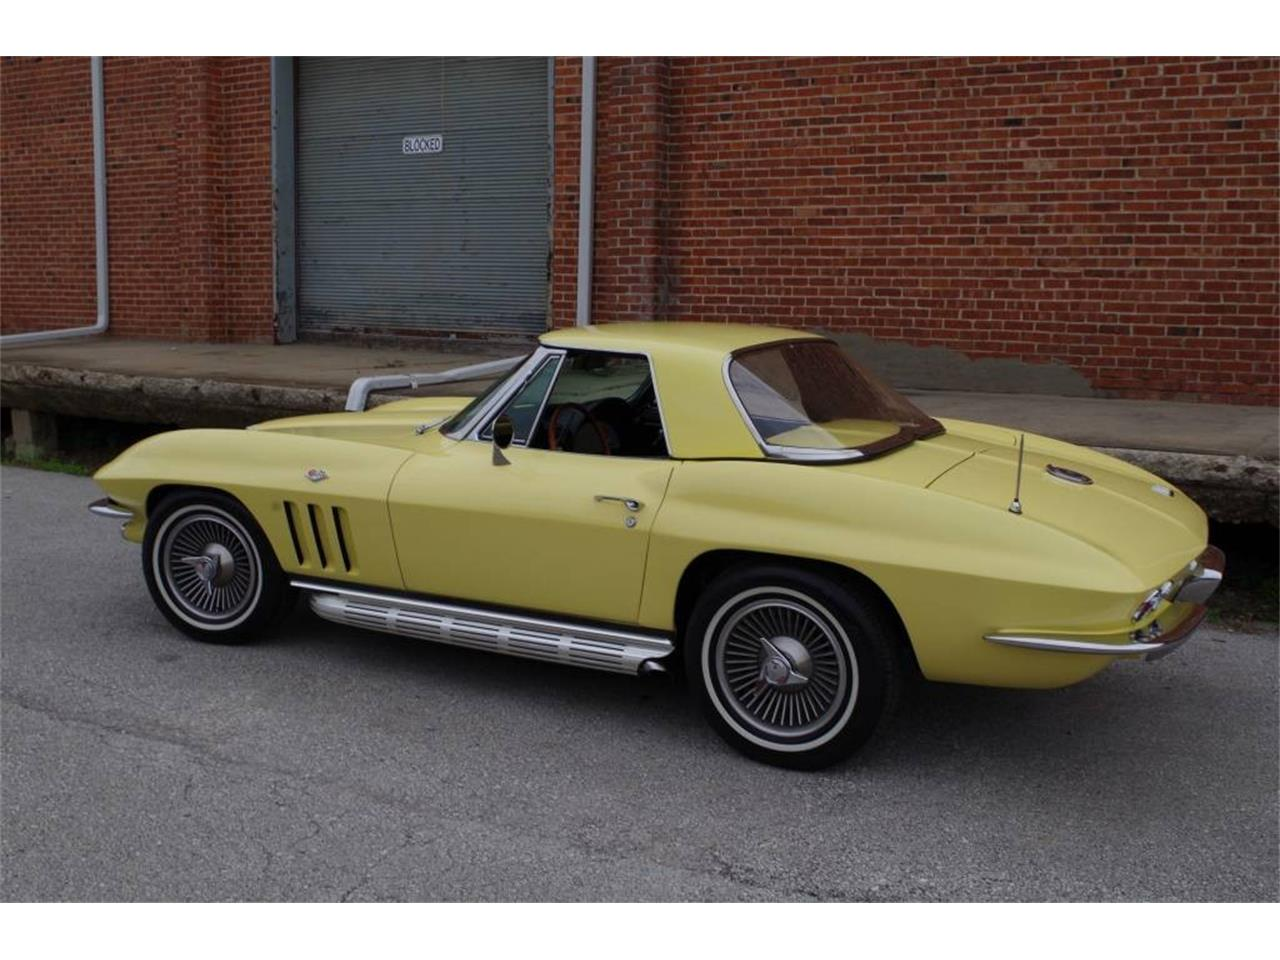 Large Picture of 1966 Corvette located in Missouri Offered by Vintage Vettes, LLC - MO1Z